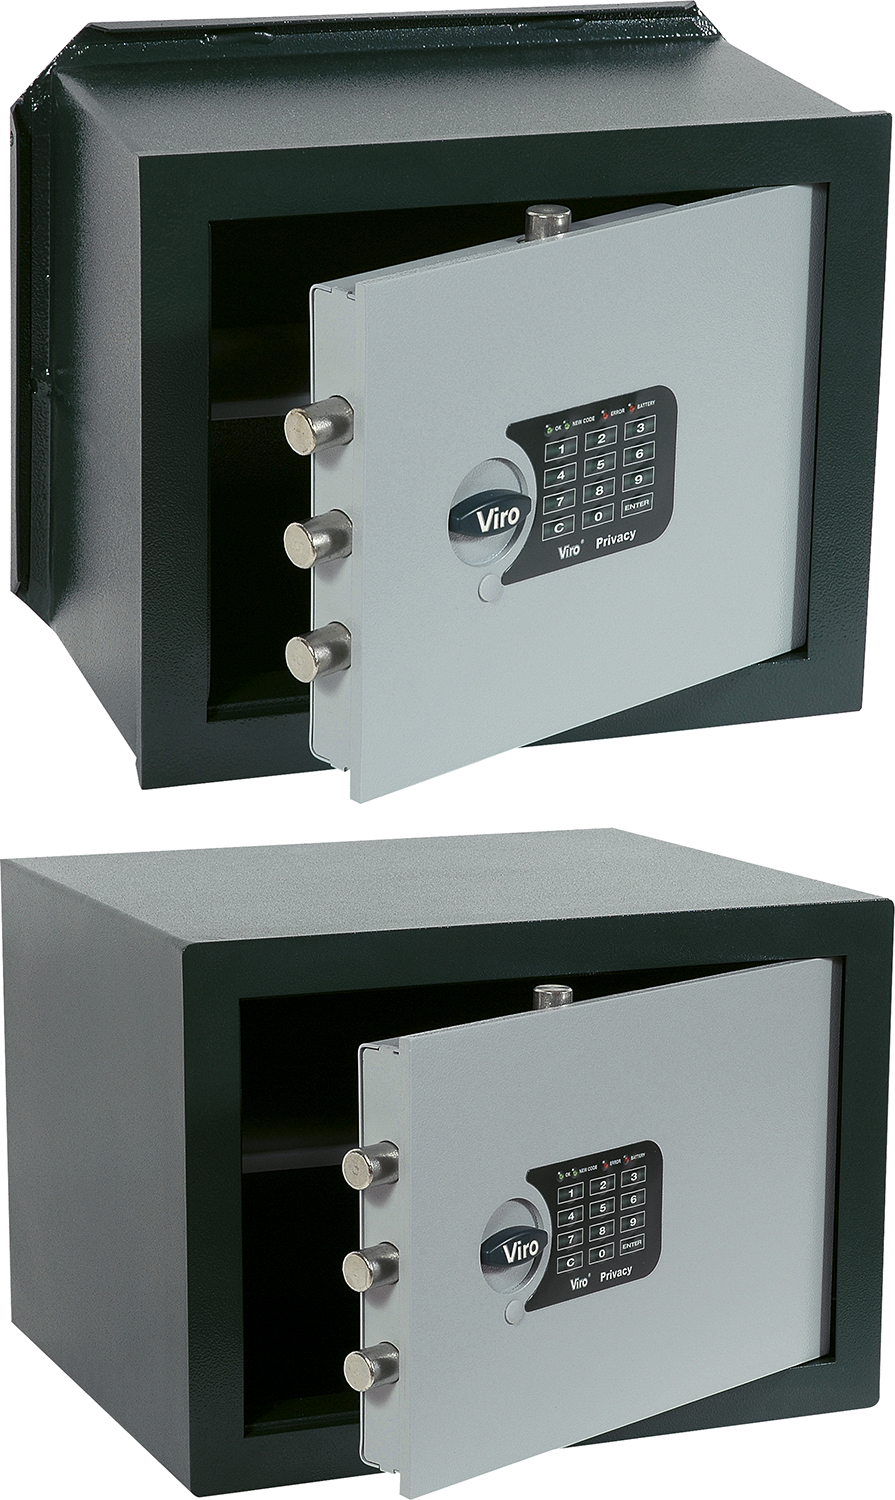 VIRO - PRIVACY electronic safes - Wall safes and free standing safes